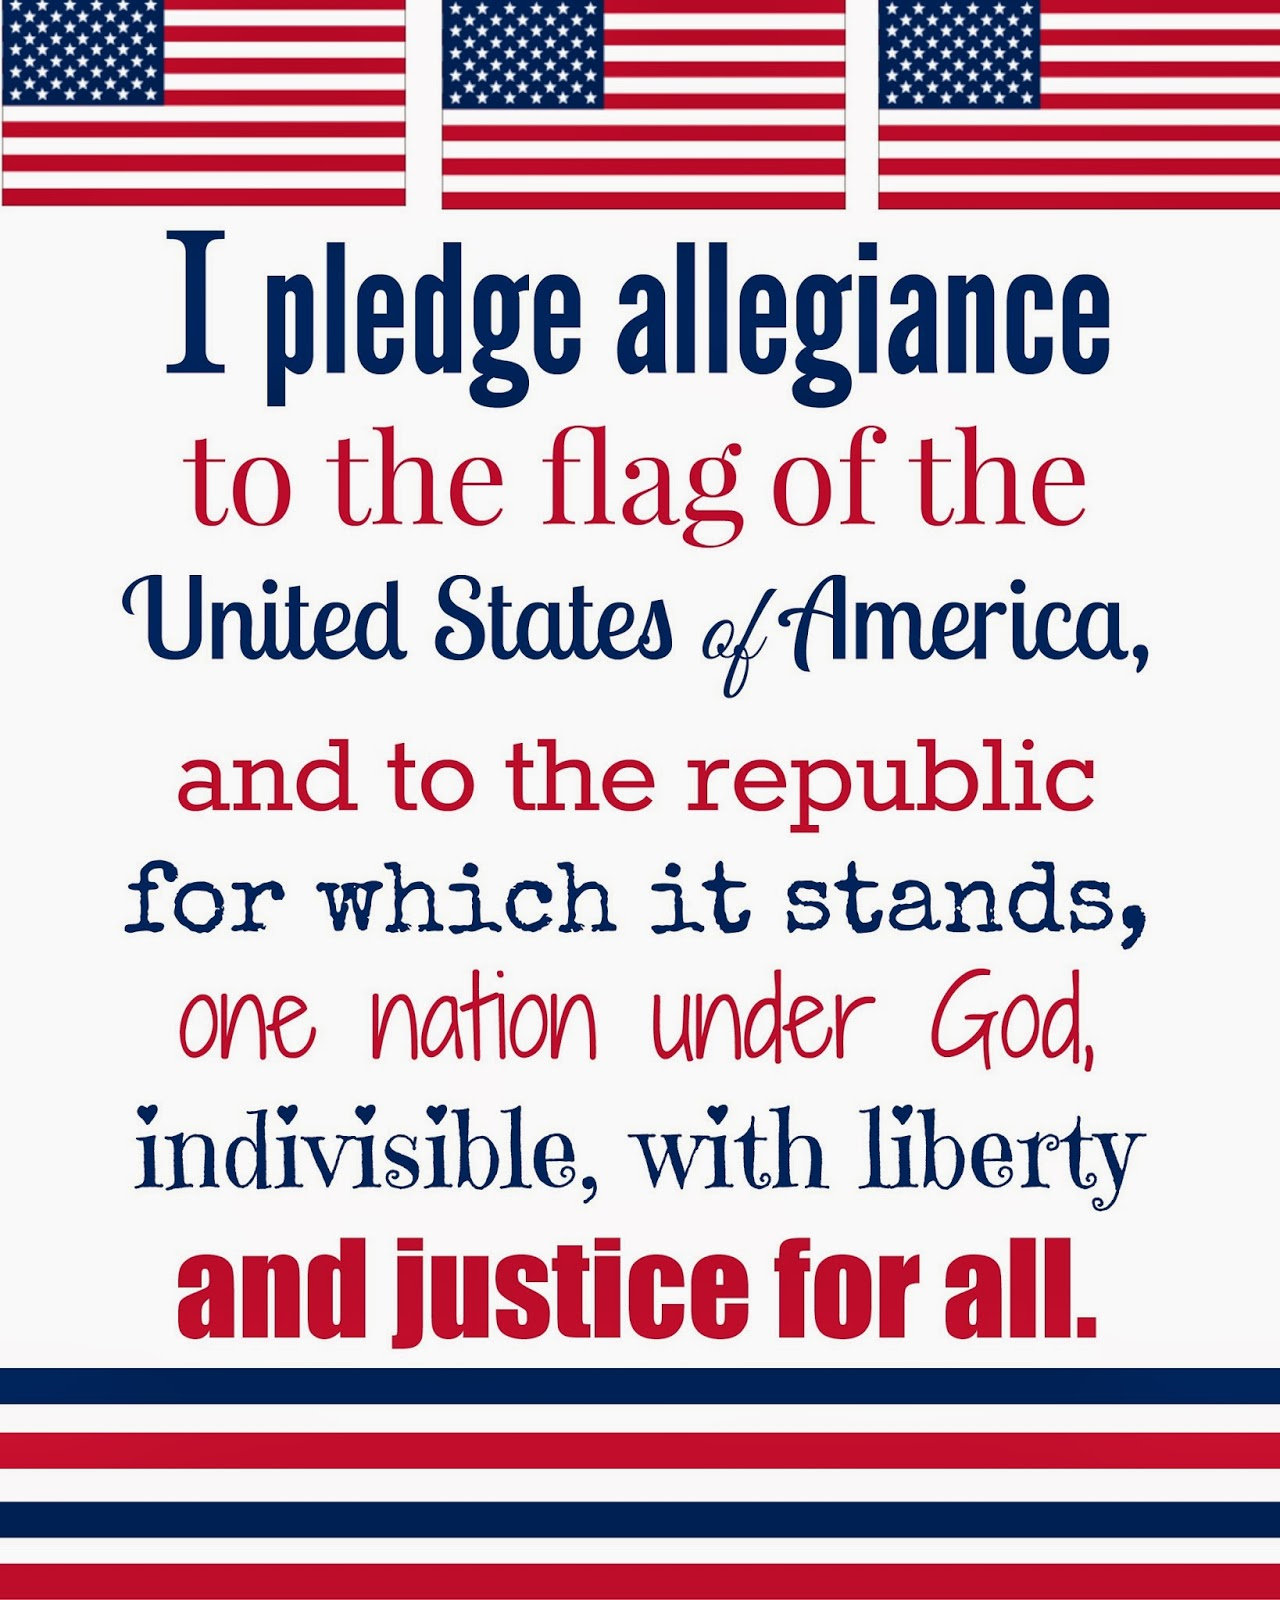 Free 4th Of July Printable Of The Pledge Of Allegiance